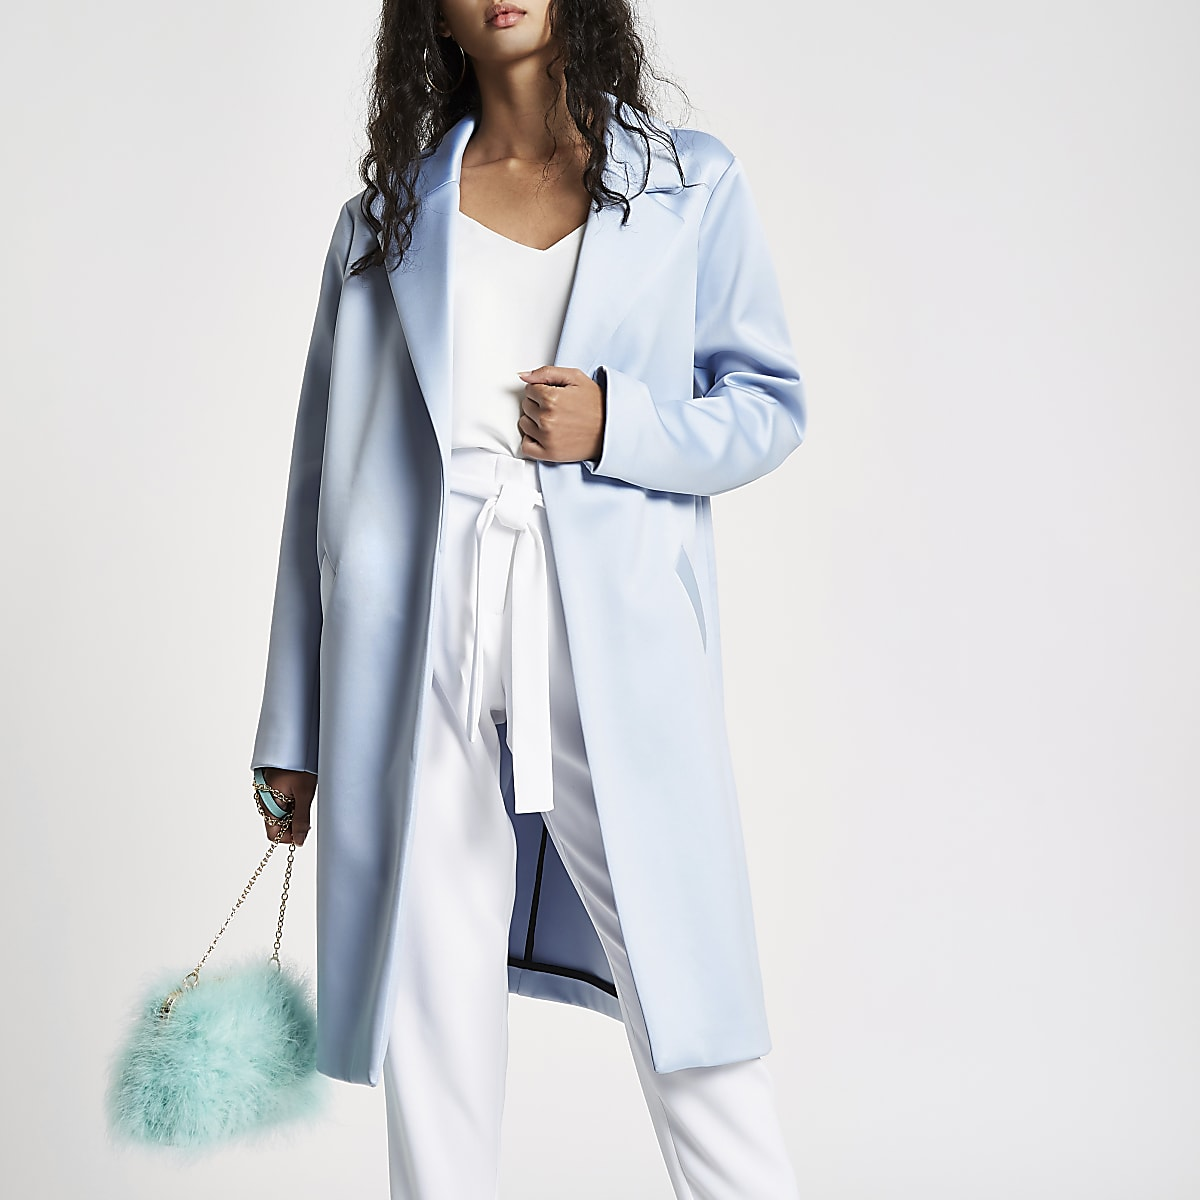 vast selection 2018 shoes Clearance sale Light blue satin tailored coat